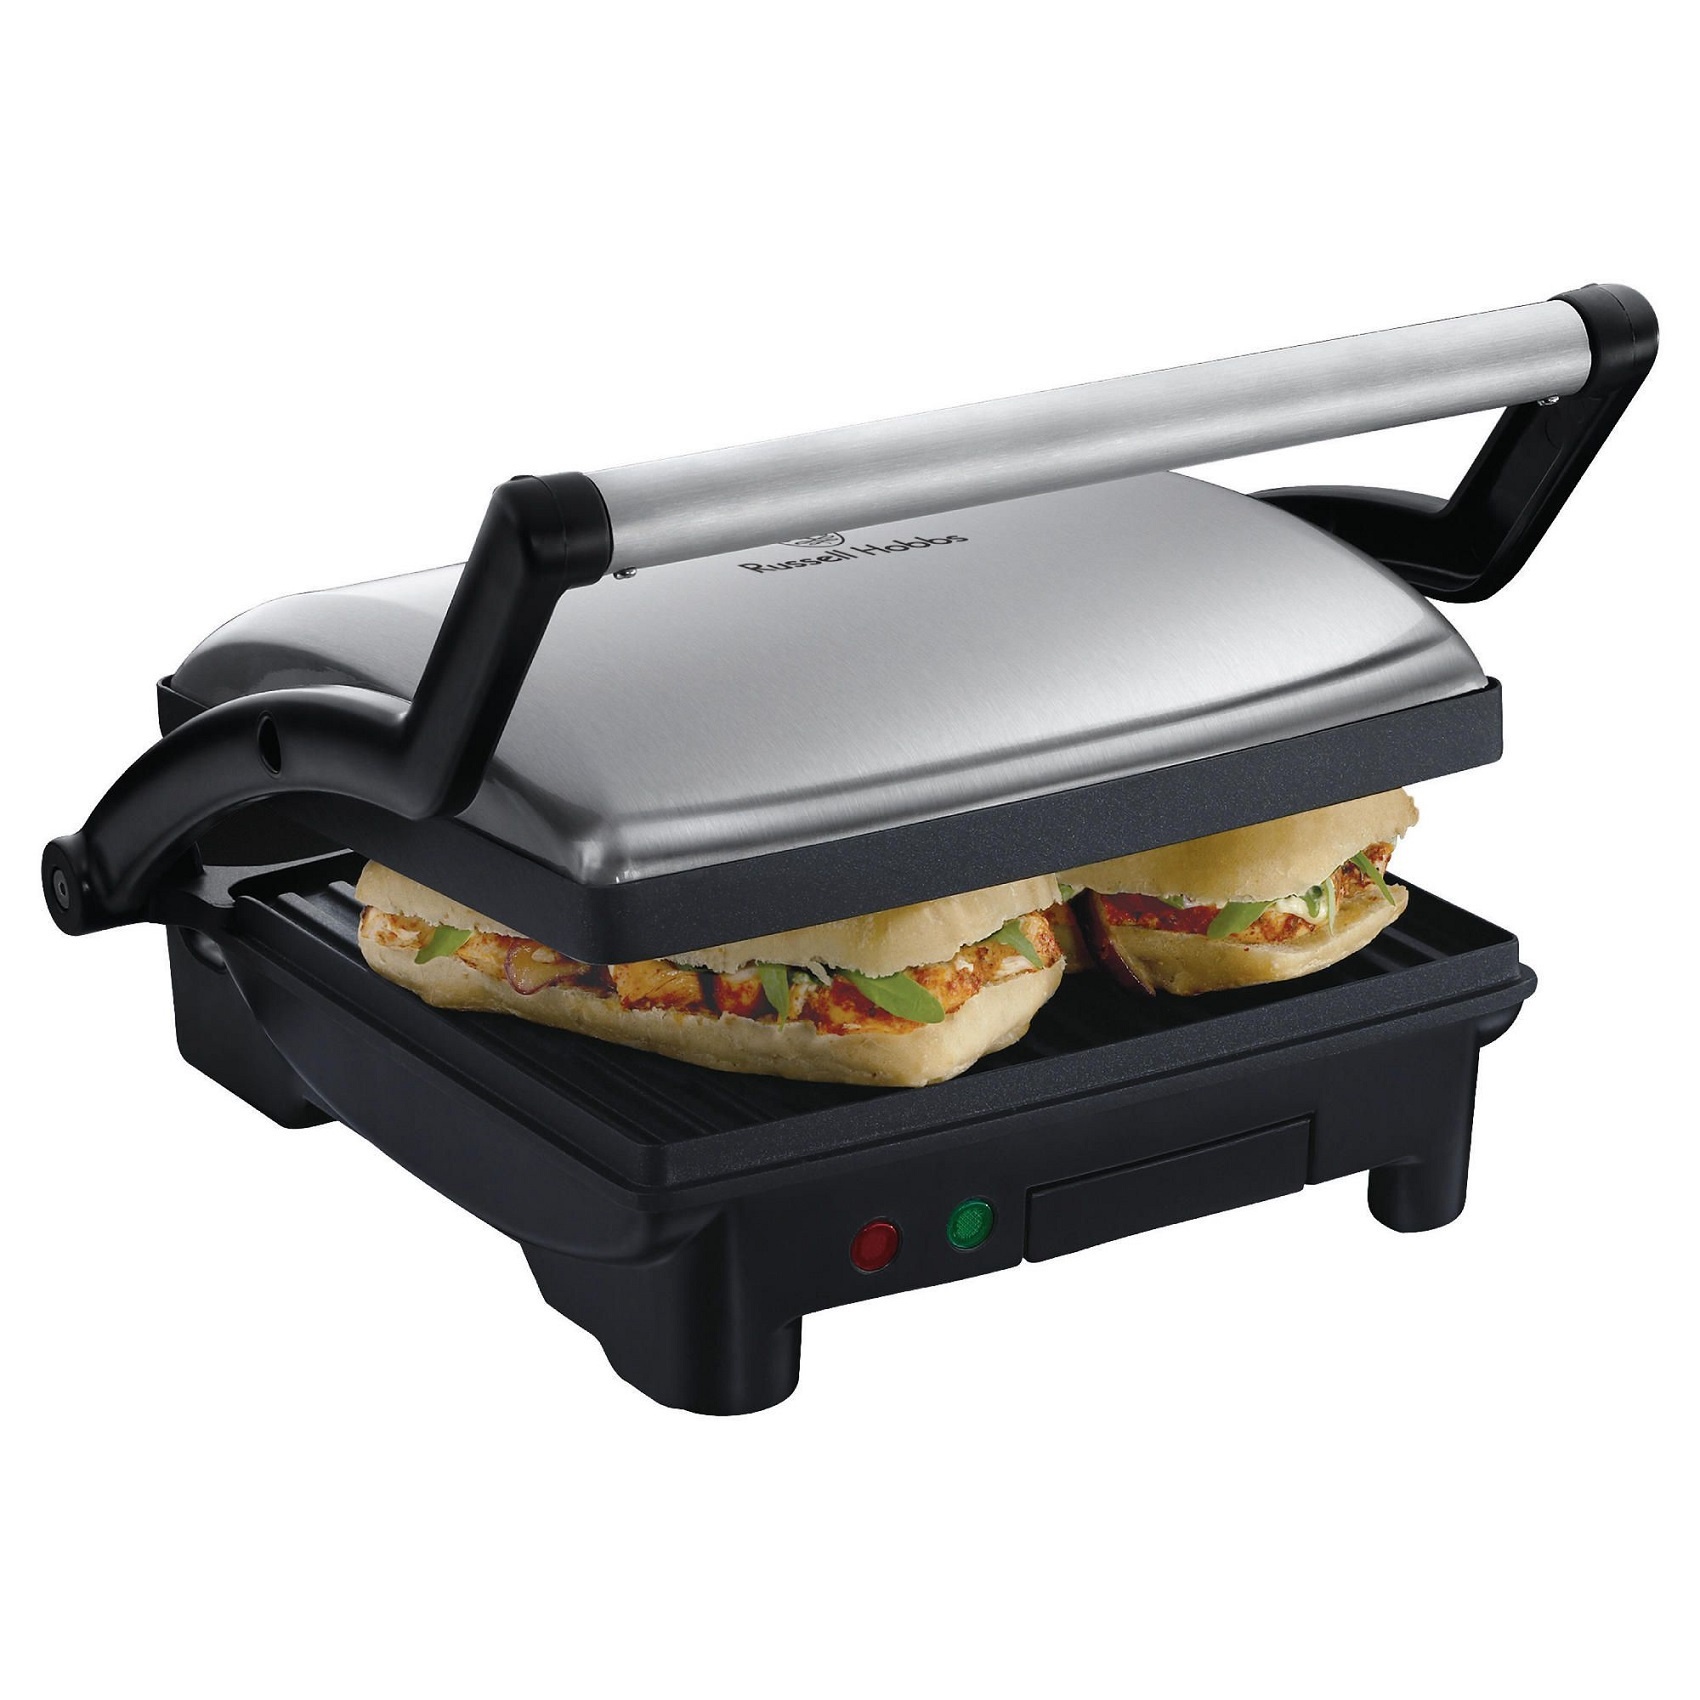 RUSSELL HOBBS GRILL 17888